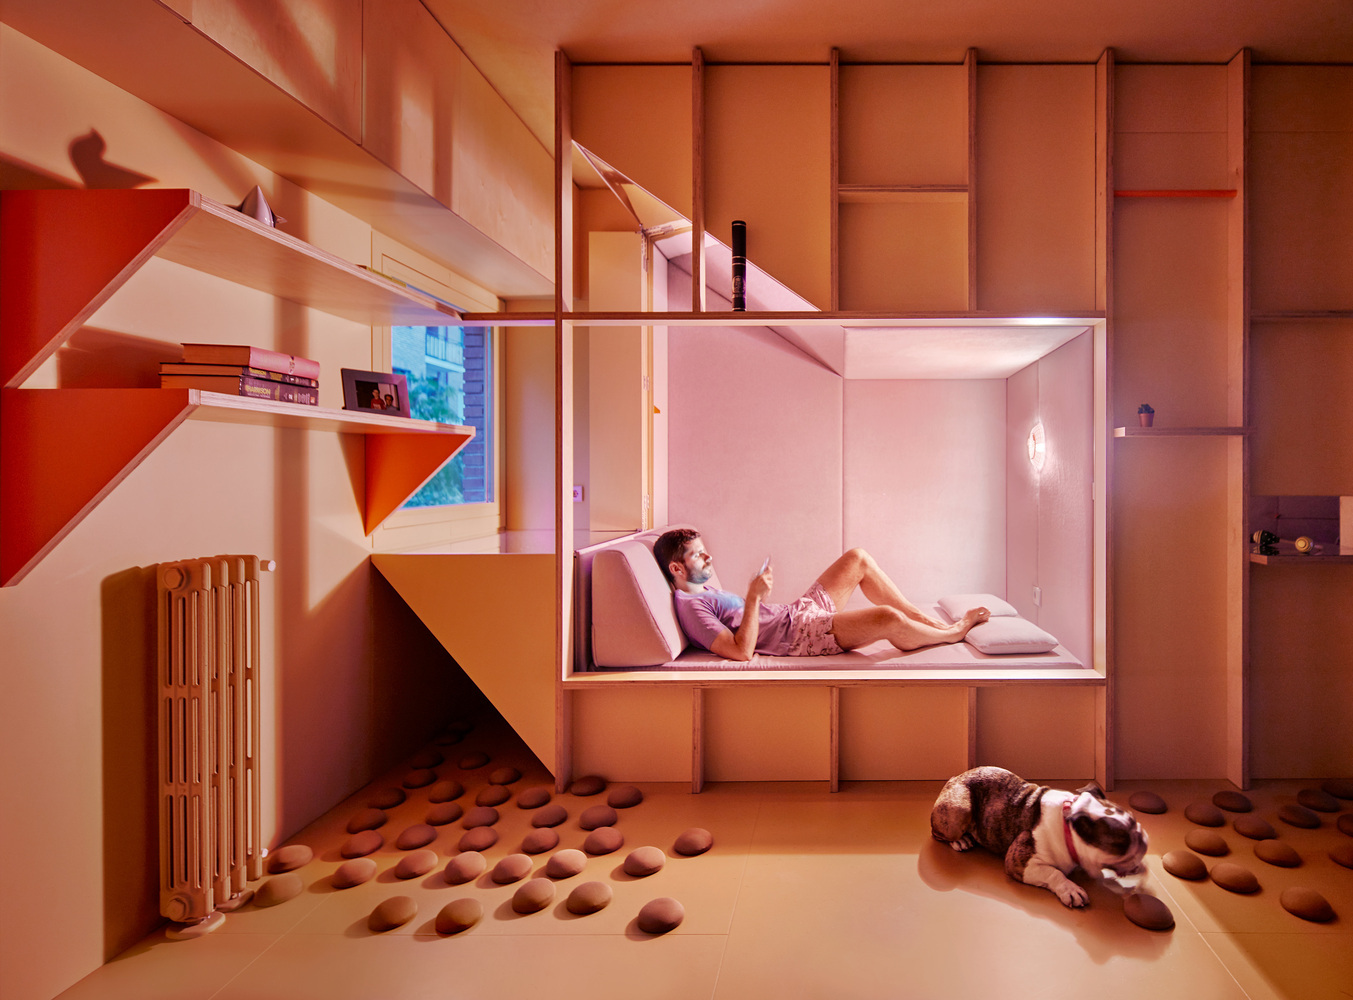 how lighting affects mood archdaily